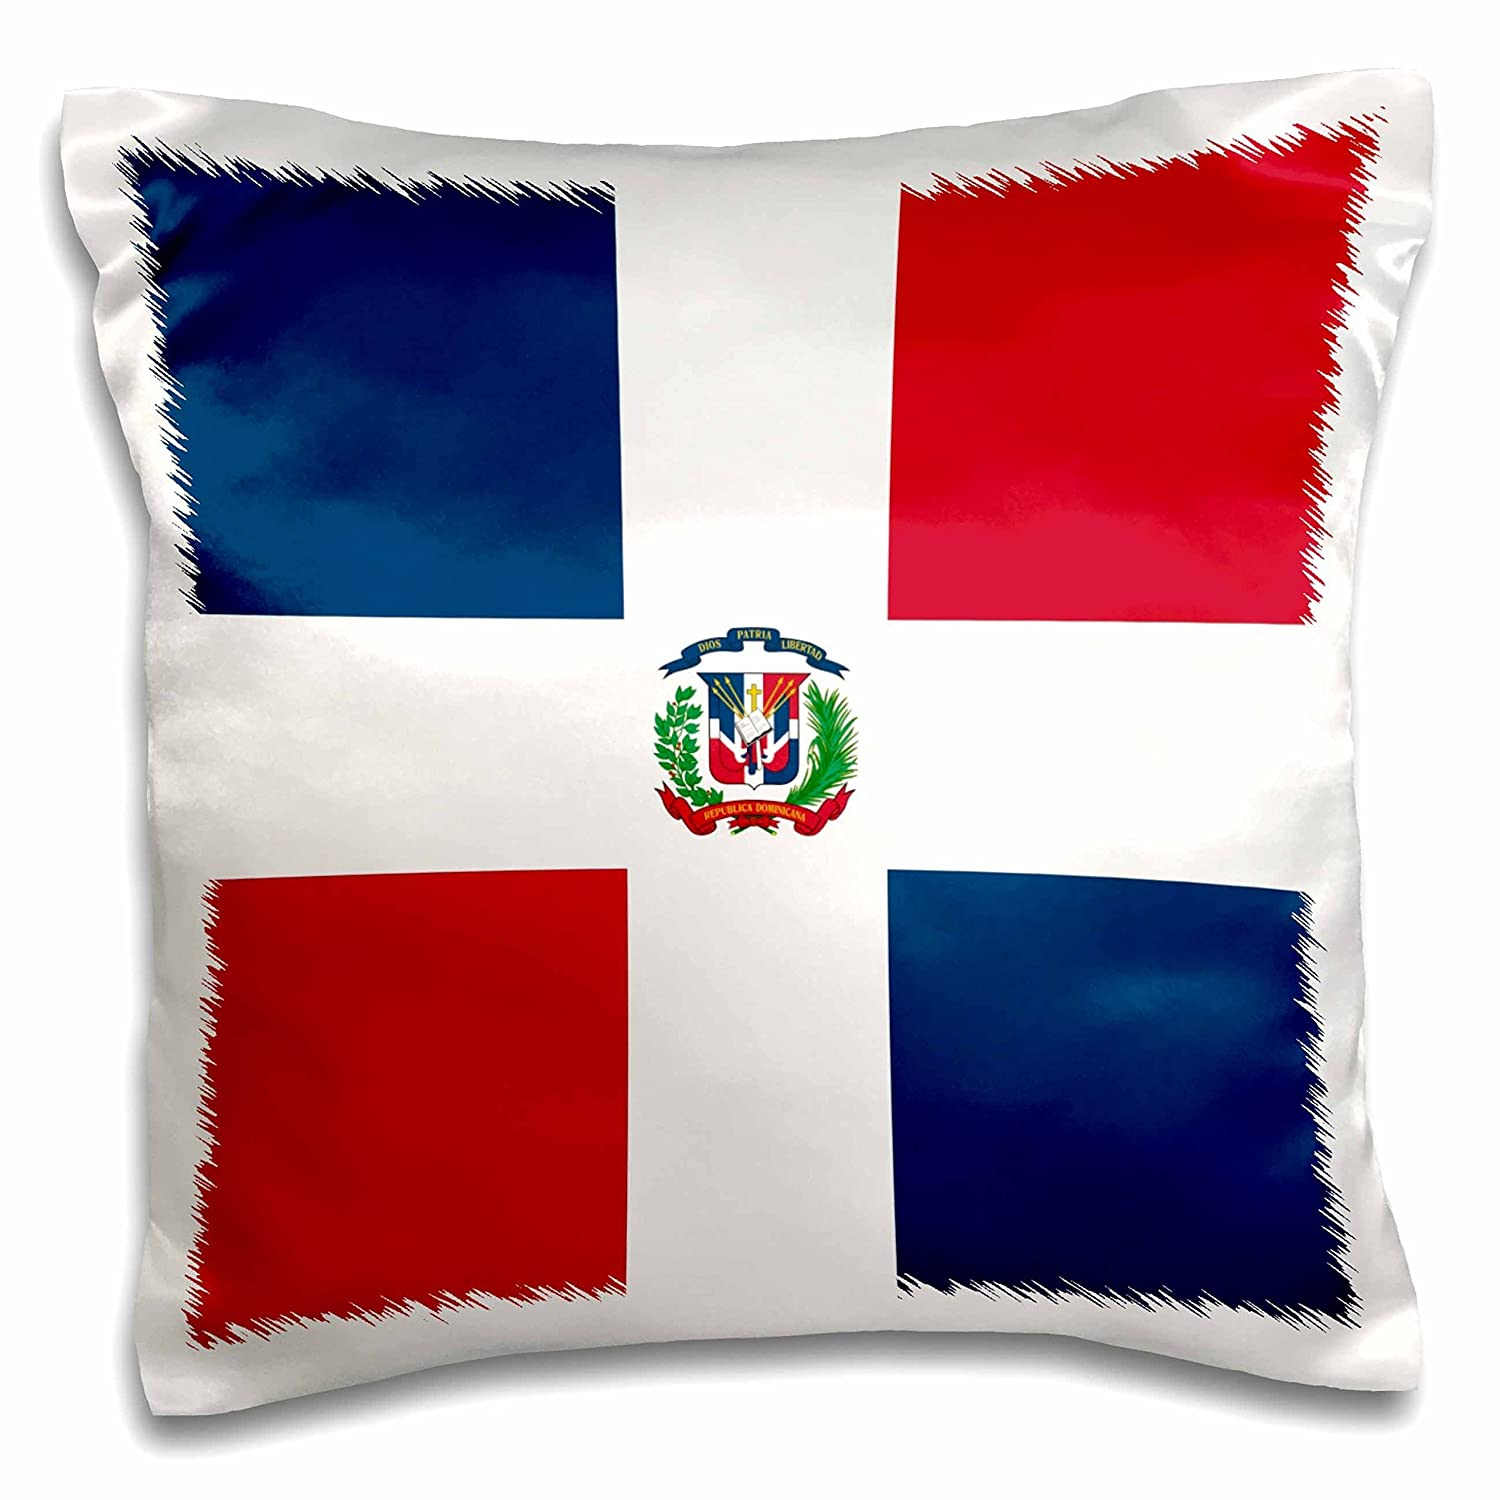 3D Rose Flag of The Dominican Republic-Navy Blue /& Red Squares with White Cross-Coat of Arms Shield Design Pillowcase 16 x 16 3dRose pc/_159801/_1